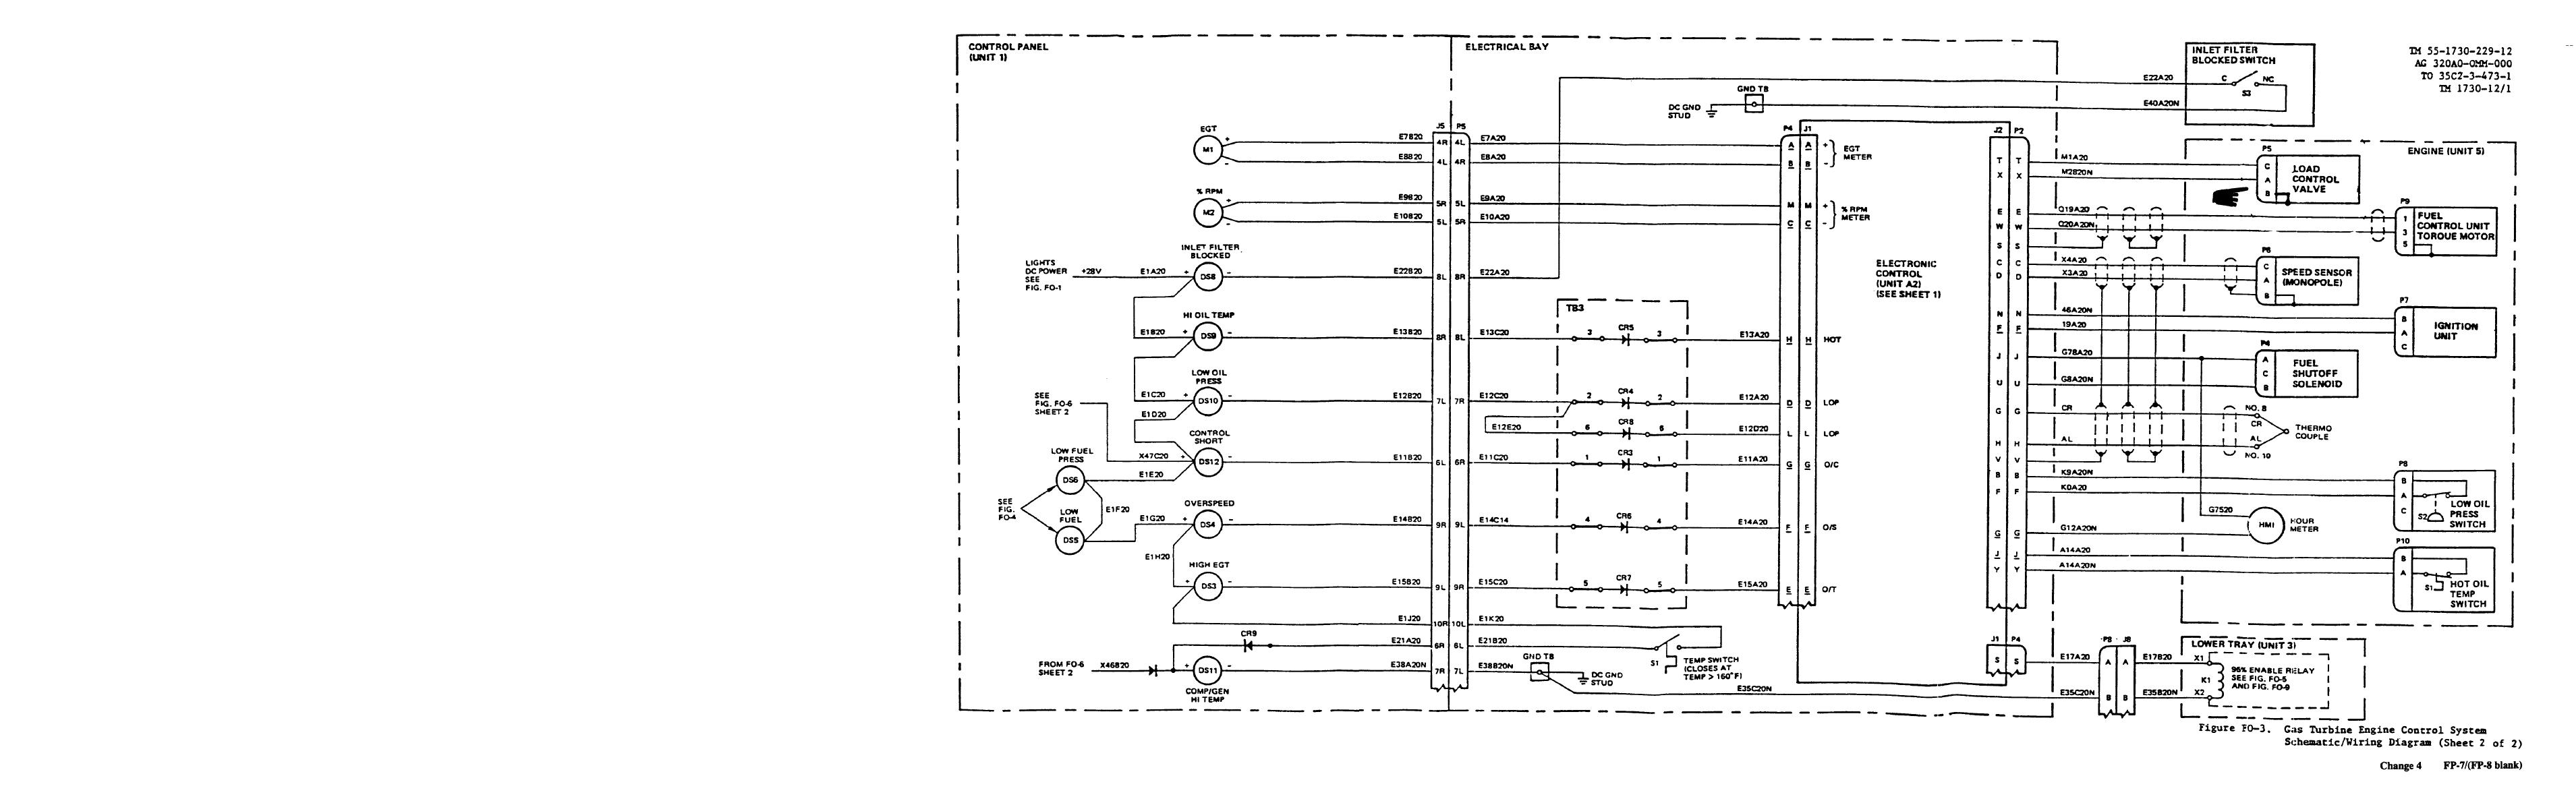 TM 55 1730 229 120545im figure fo 3 gas turbine engine control system schematic wiring wiring diagram for access control system at eliteediting.co